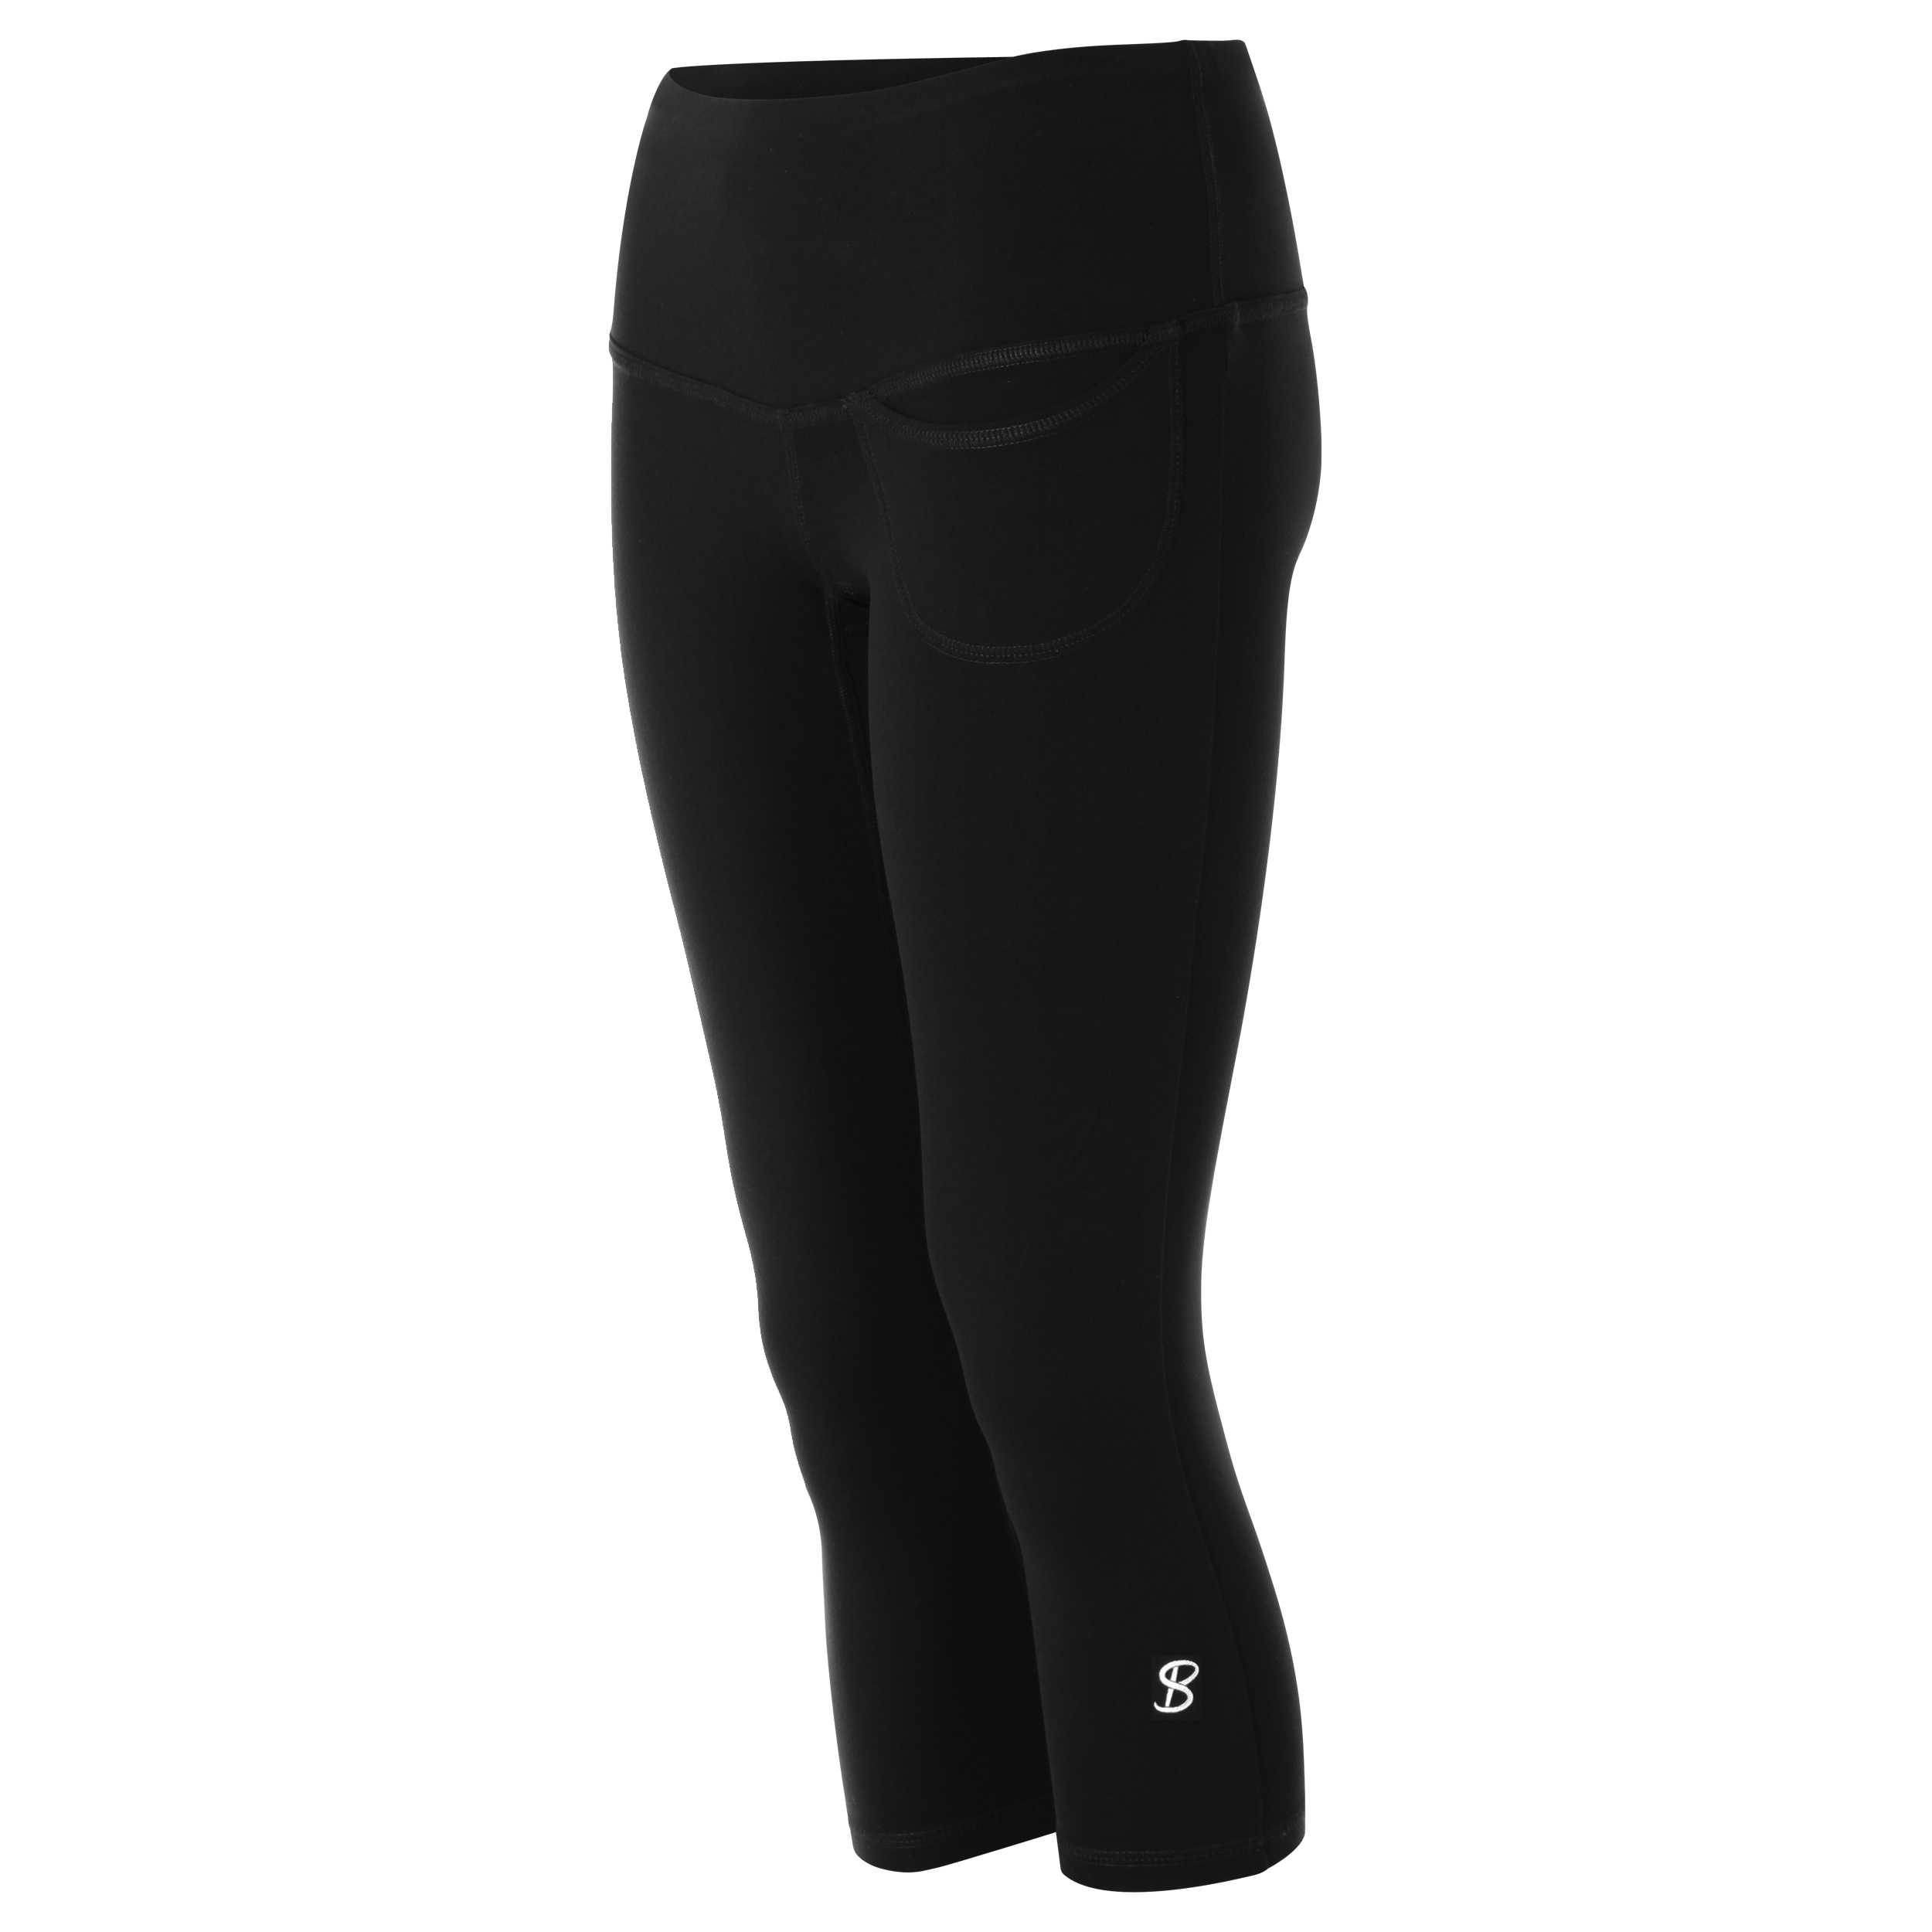 262cfb3b67369 Sofibella Women's Pocket Capri Tennis Leggings (Black) - Do It Tennis